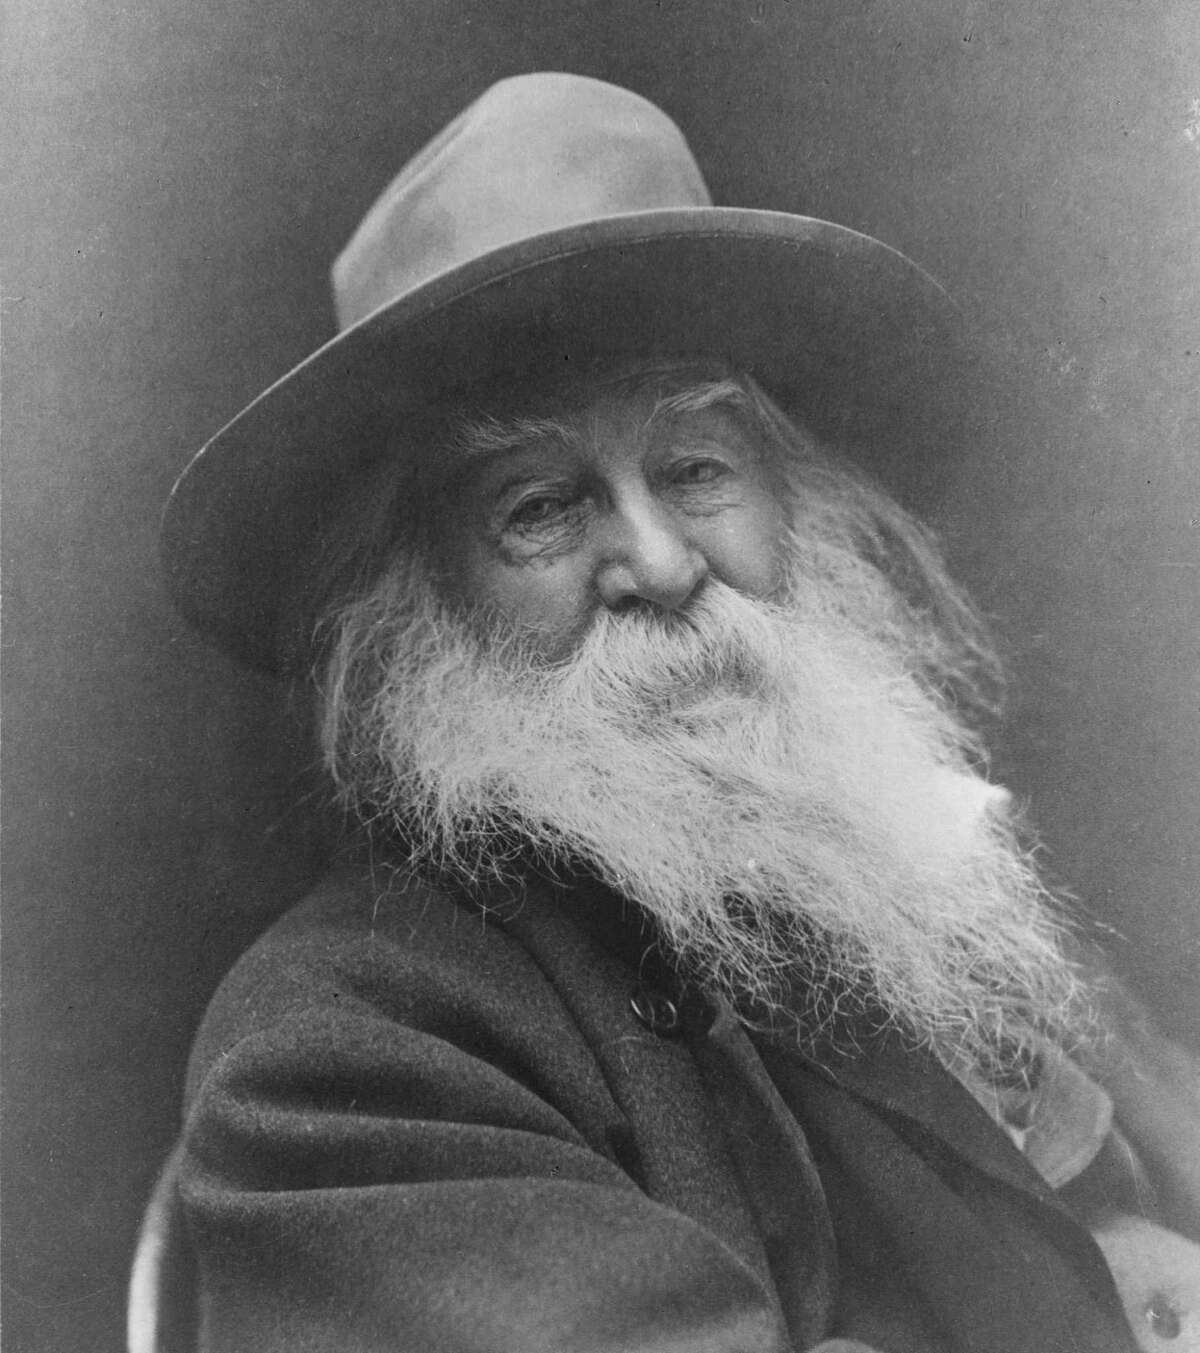 In an undated handout photo, Walt Whitman in 1887. A nearly 47,000-word journalistic series written by Whitman called ?Manly Health and Training,? which had been lost for more than 150 years, will be published online by a scholarly journal in 2016, in what some experts are calling the biggest new Whitman discovery in decades. (National Archives via The New York Times) -- EDITORIAL USE ONLY